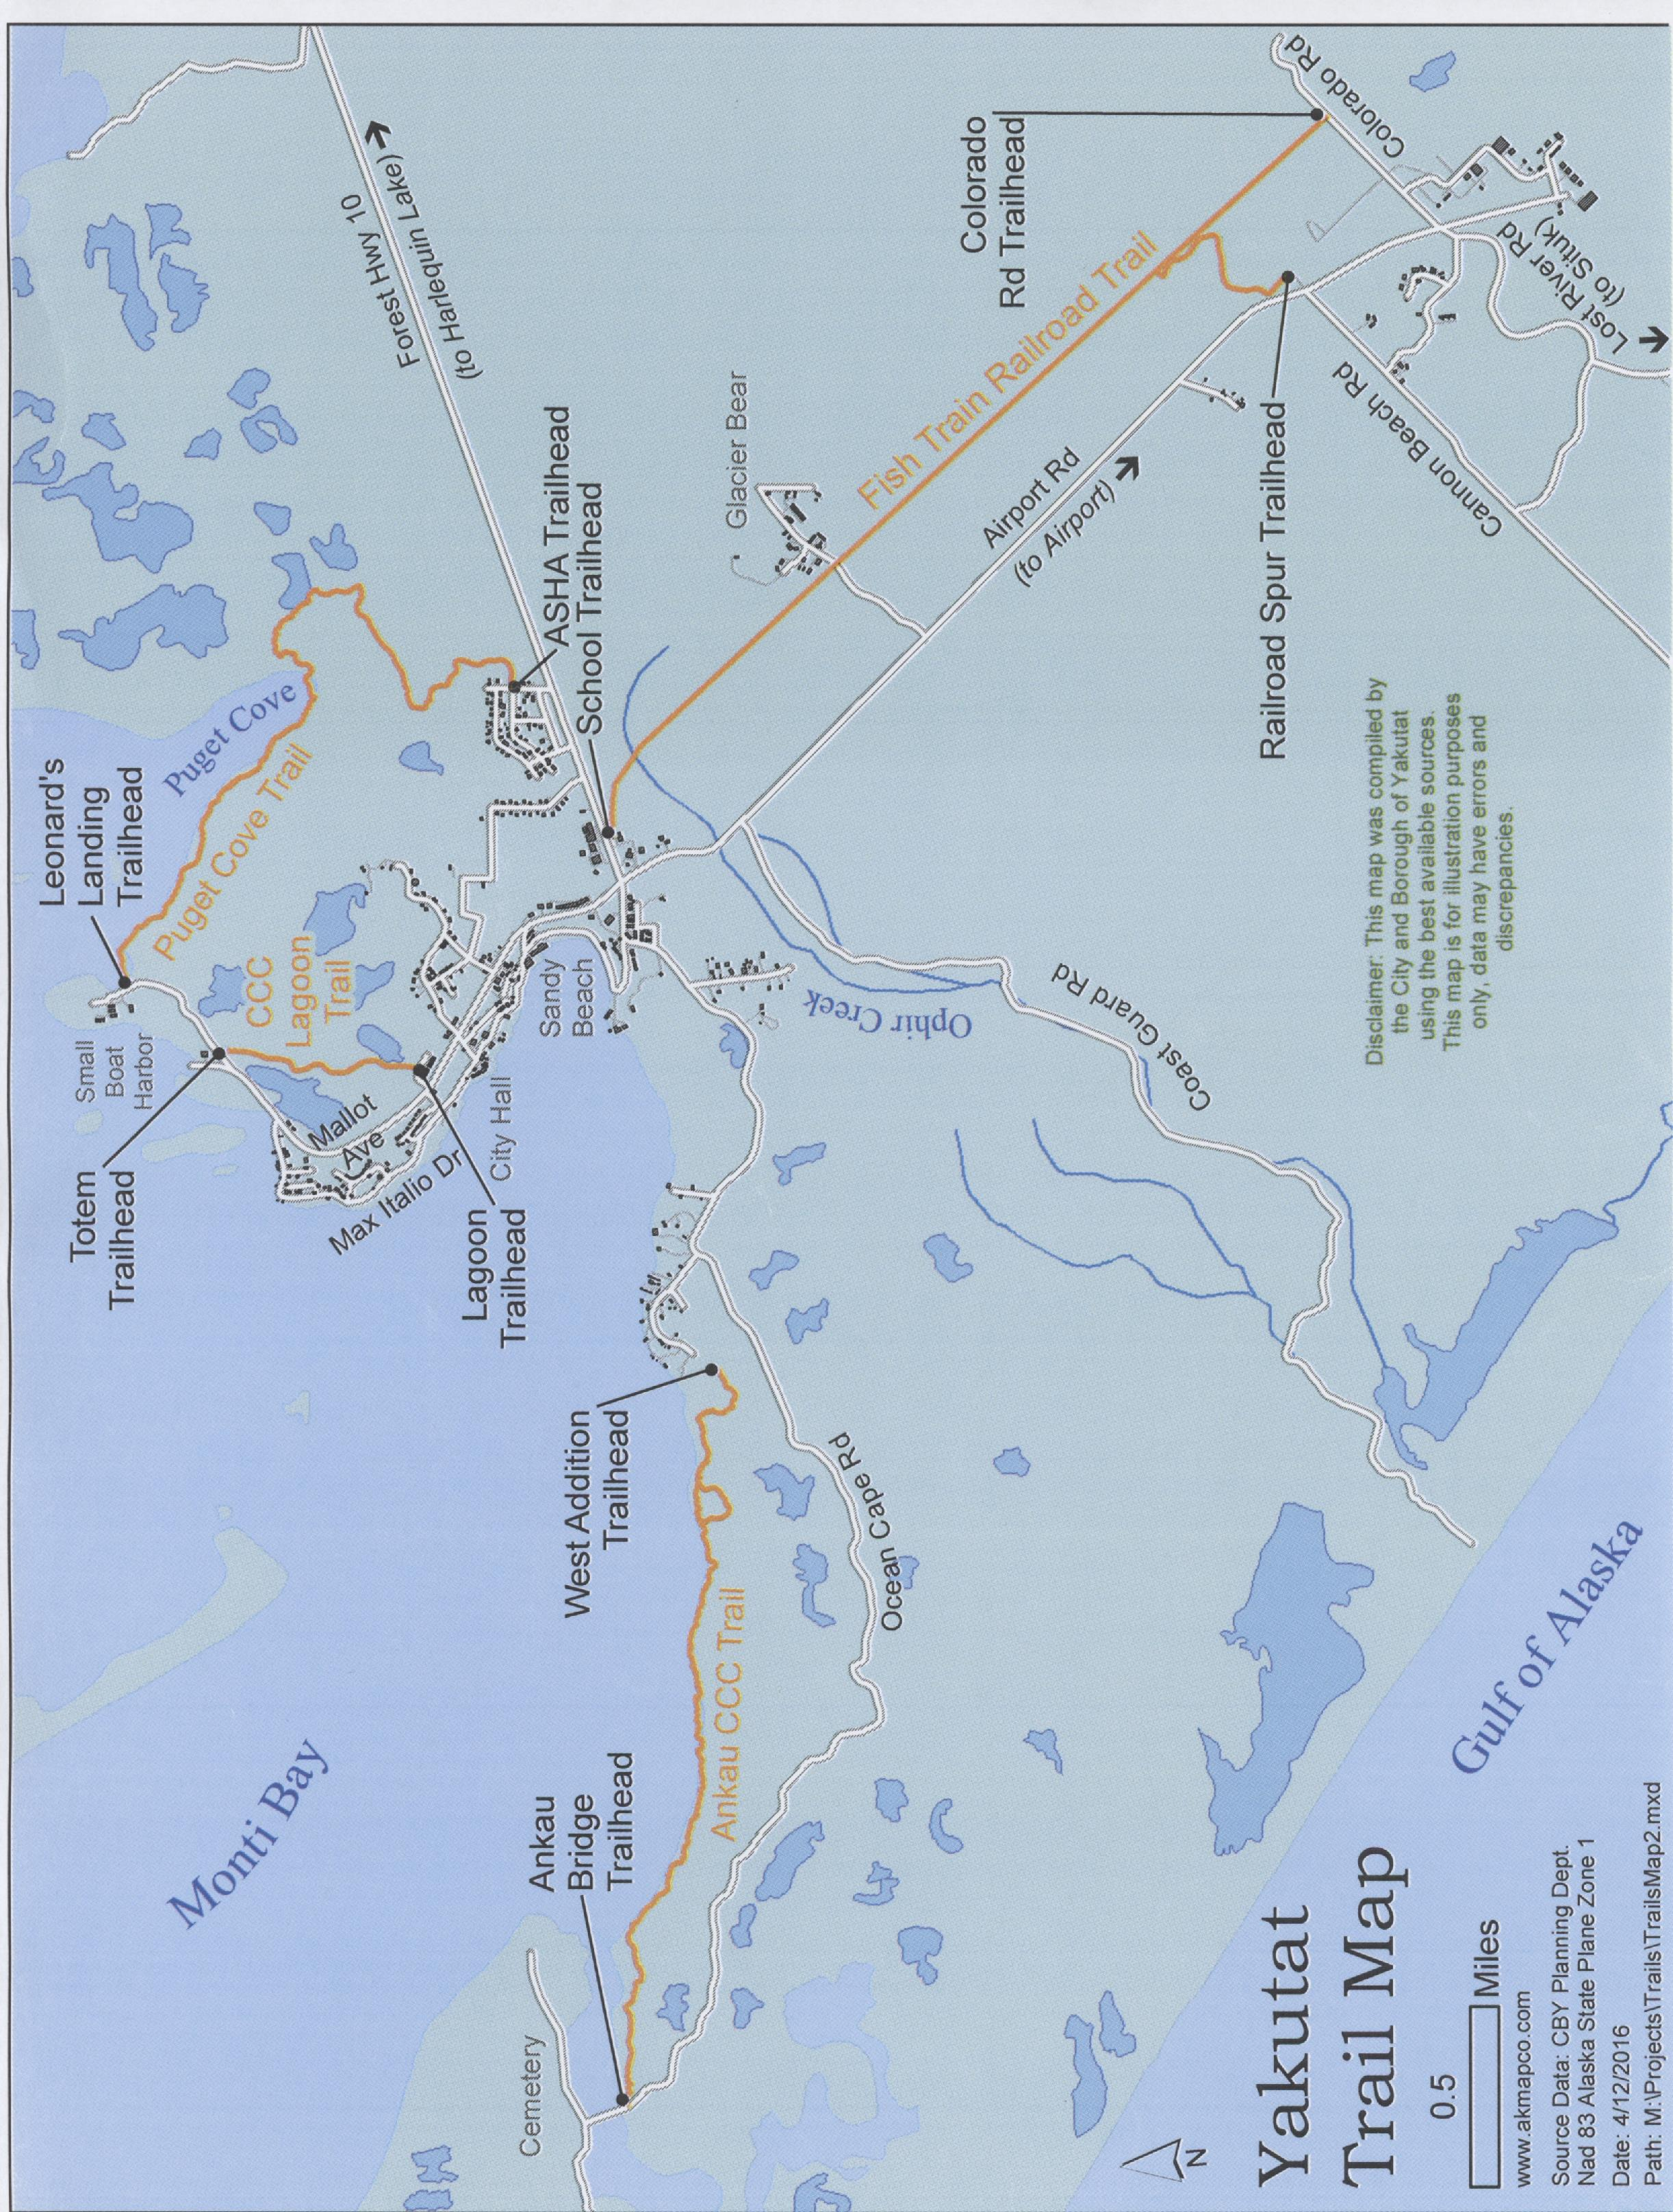 Ketchikan Alaska Map Google.Tongass National Forest Maps Publications